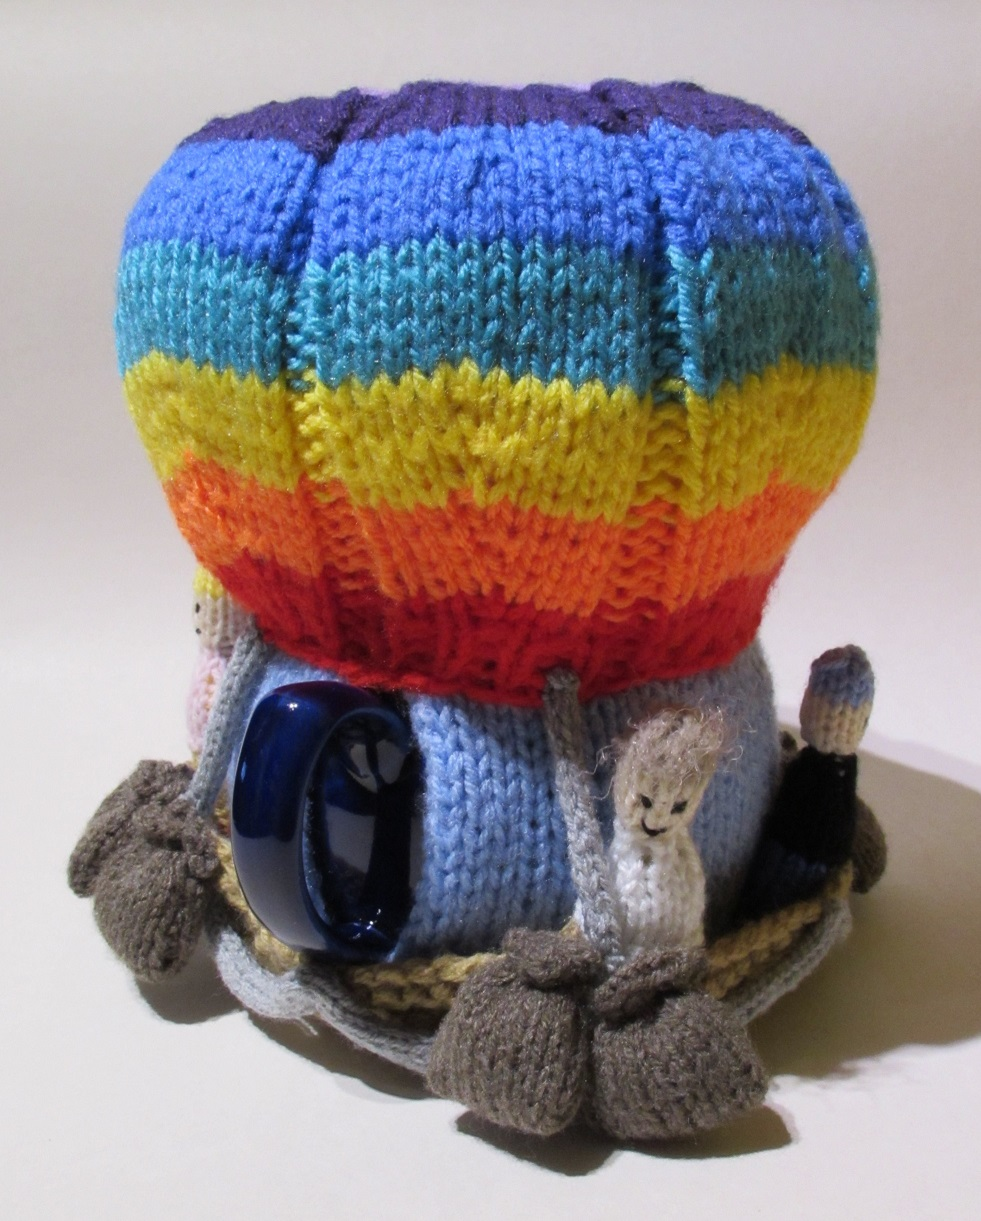 Hot Air Balloon knitting pattern